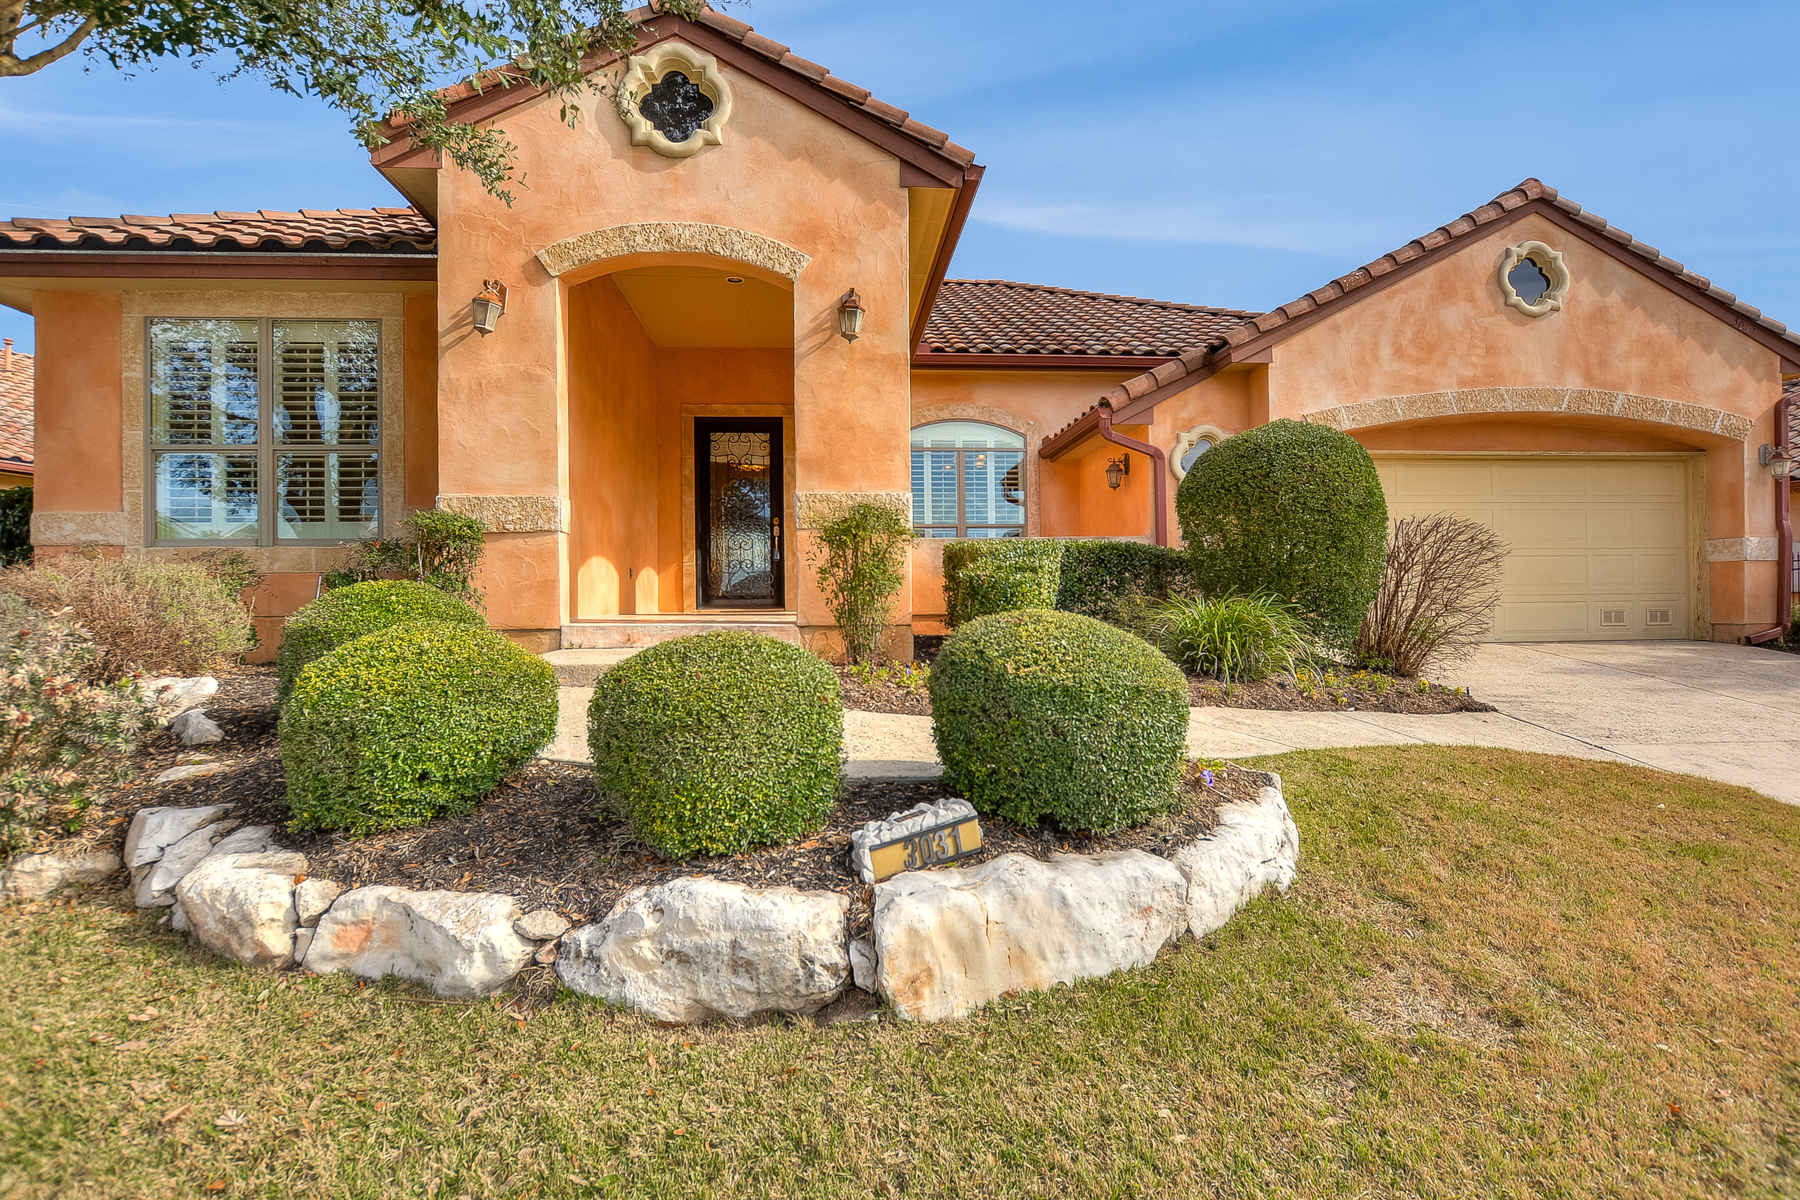 Single Family Home for Sale at Gorgeous Garden Home in Rogers Ranch 3031 Panzano Pl San Antonio, Texas 78258 United States